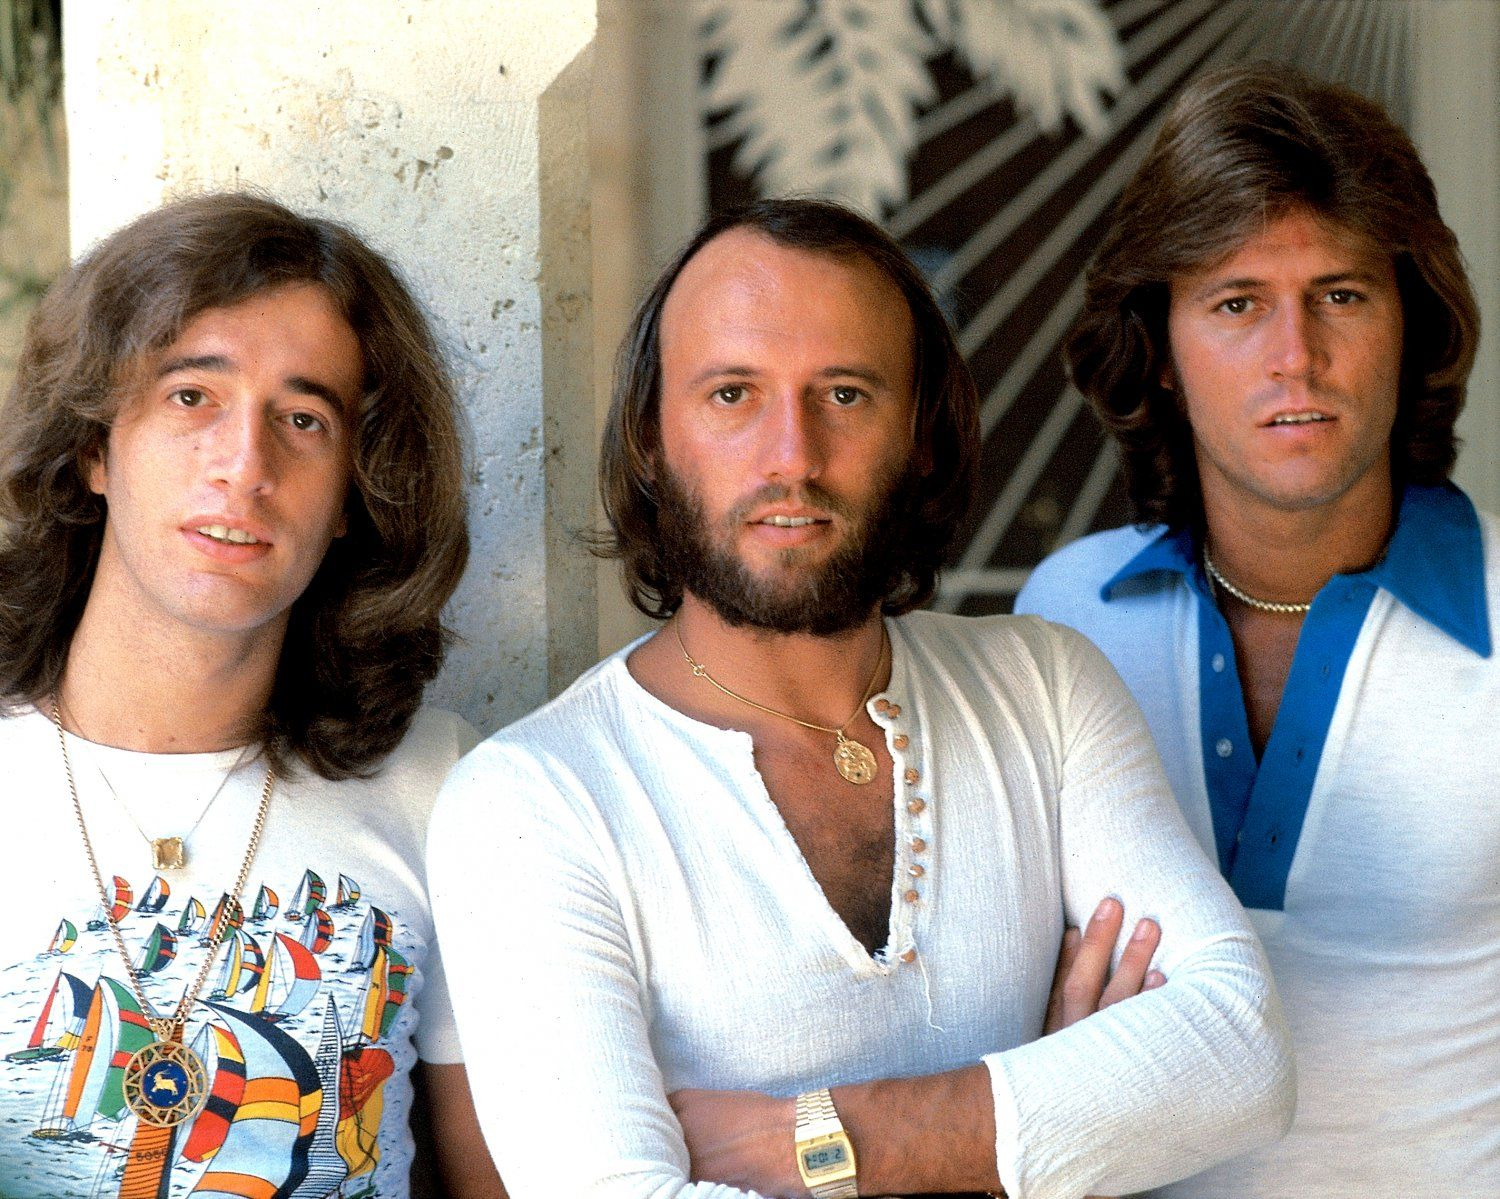 THE+BEE+GEES+LEGENDARY+POP+MUSIC+GROUP+-+8X10+PUBLICITY+PHOTO+(OP-010)